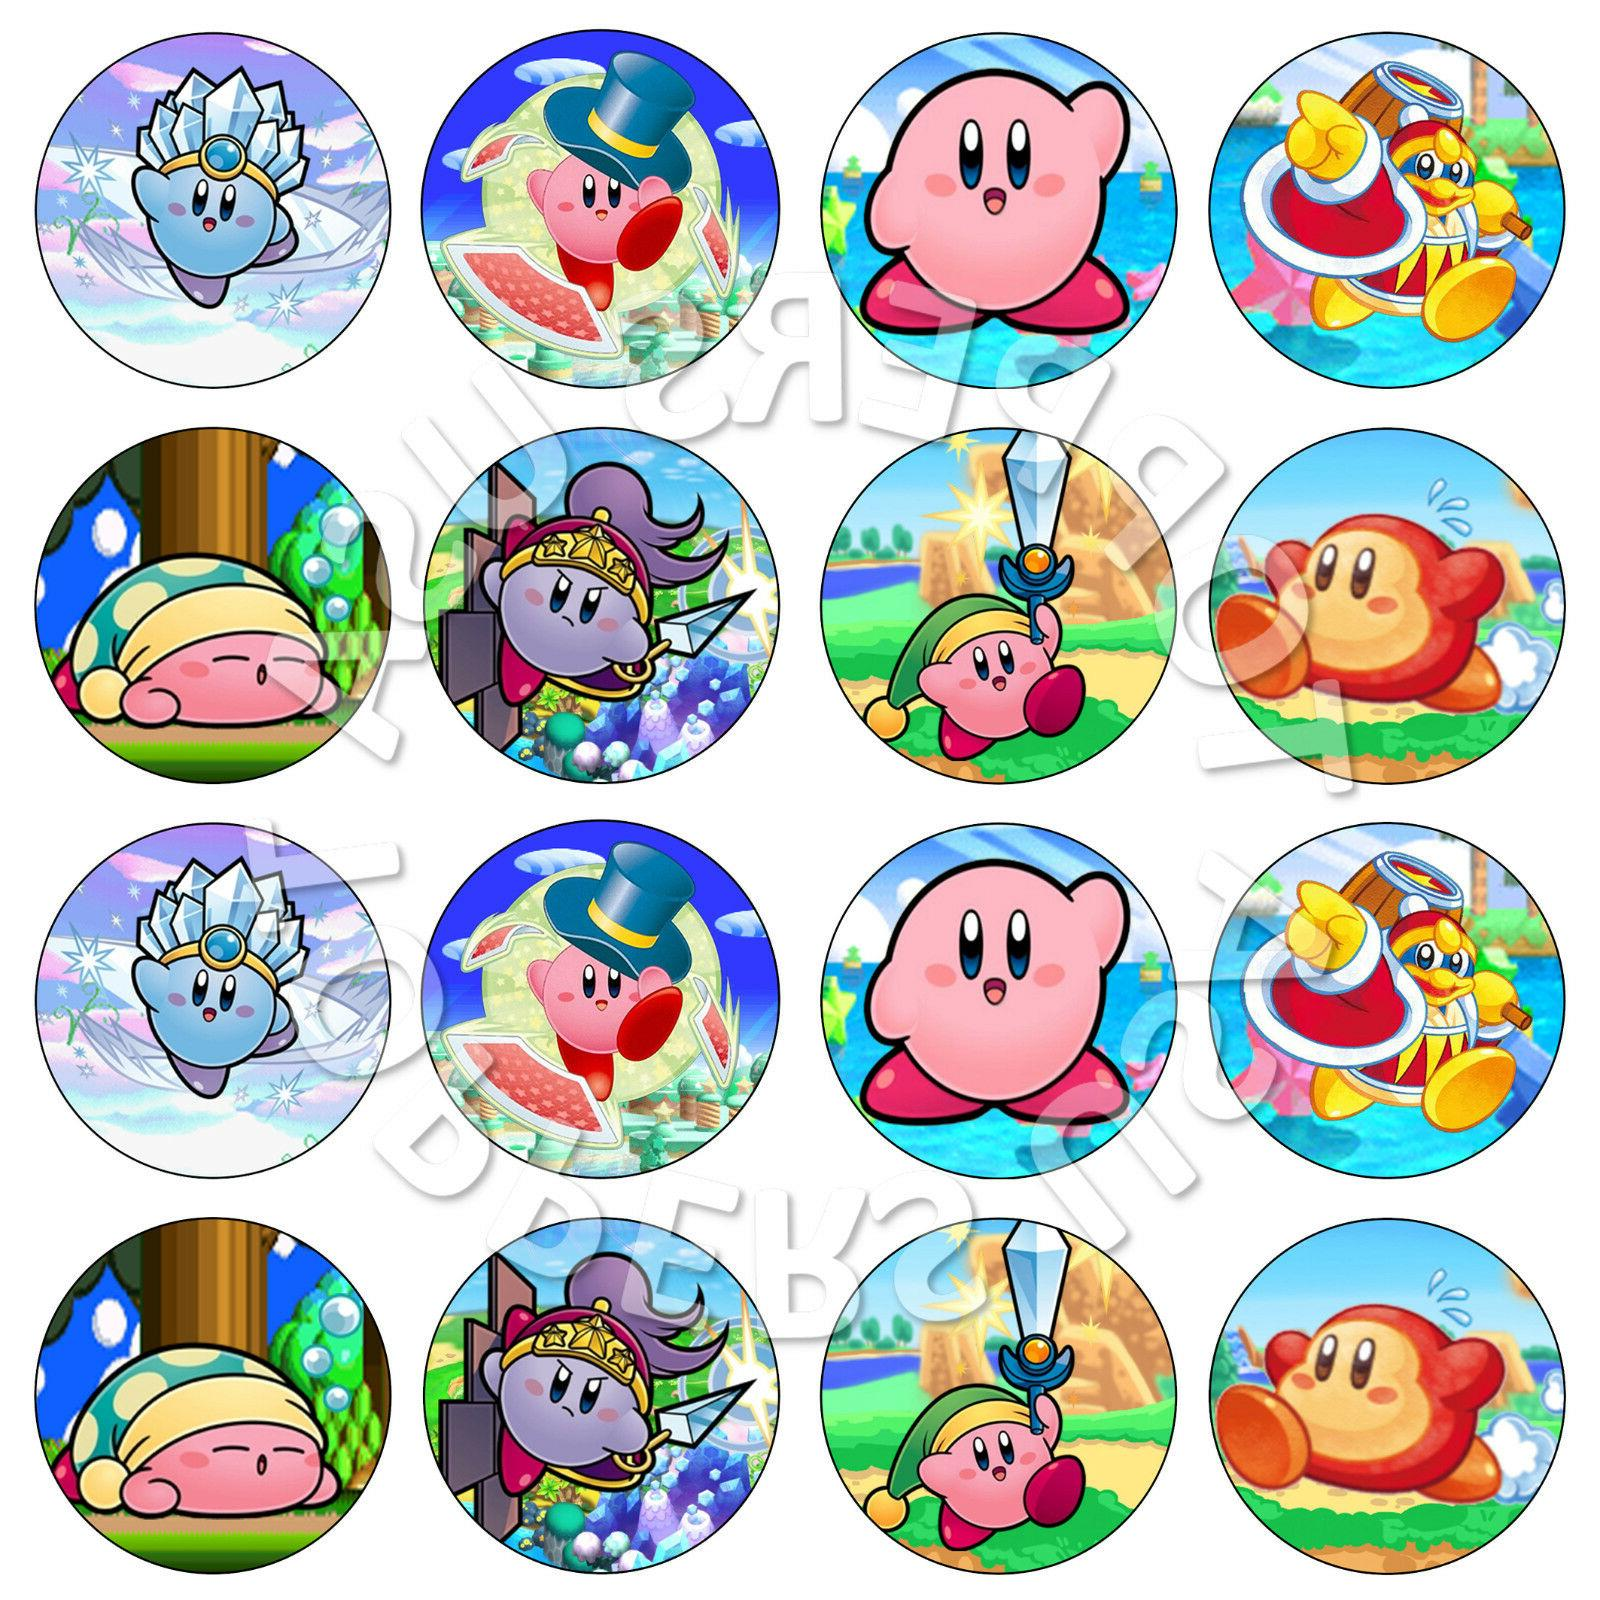 16x edible kirby birthday party cupcake toppers